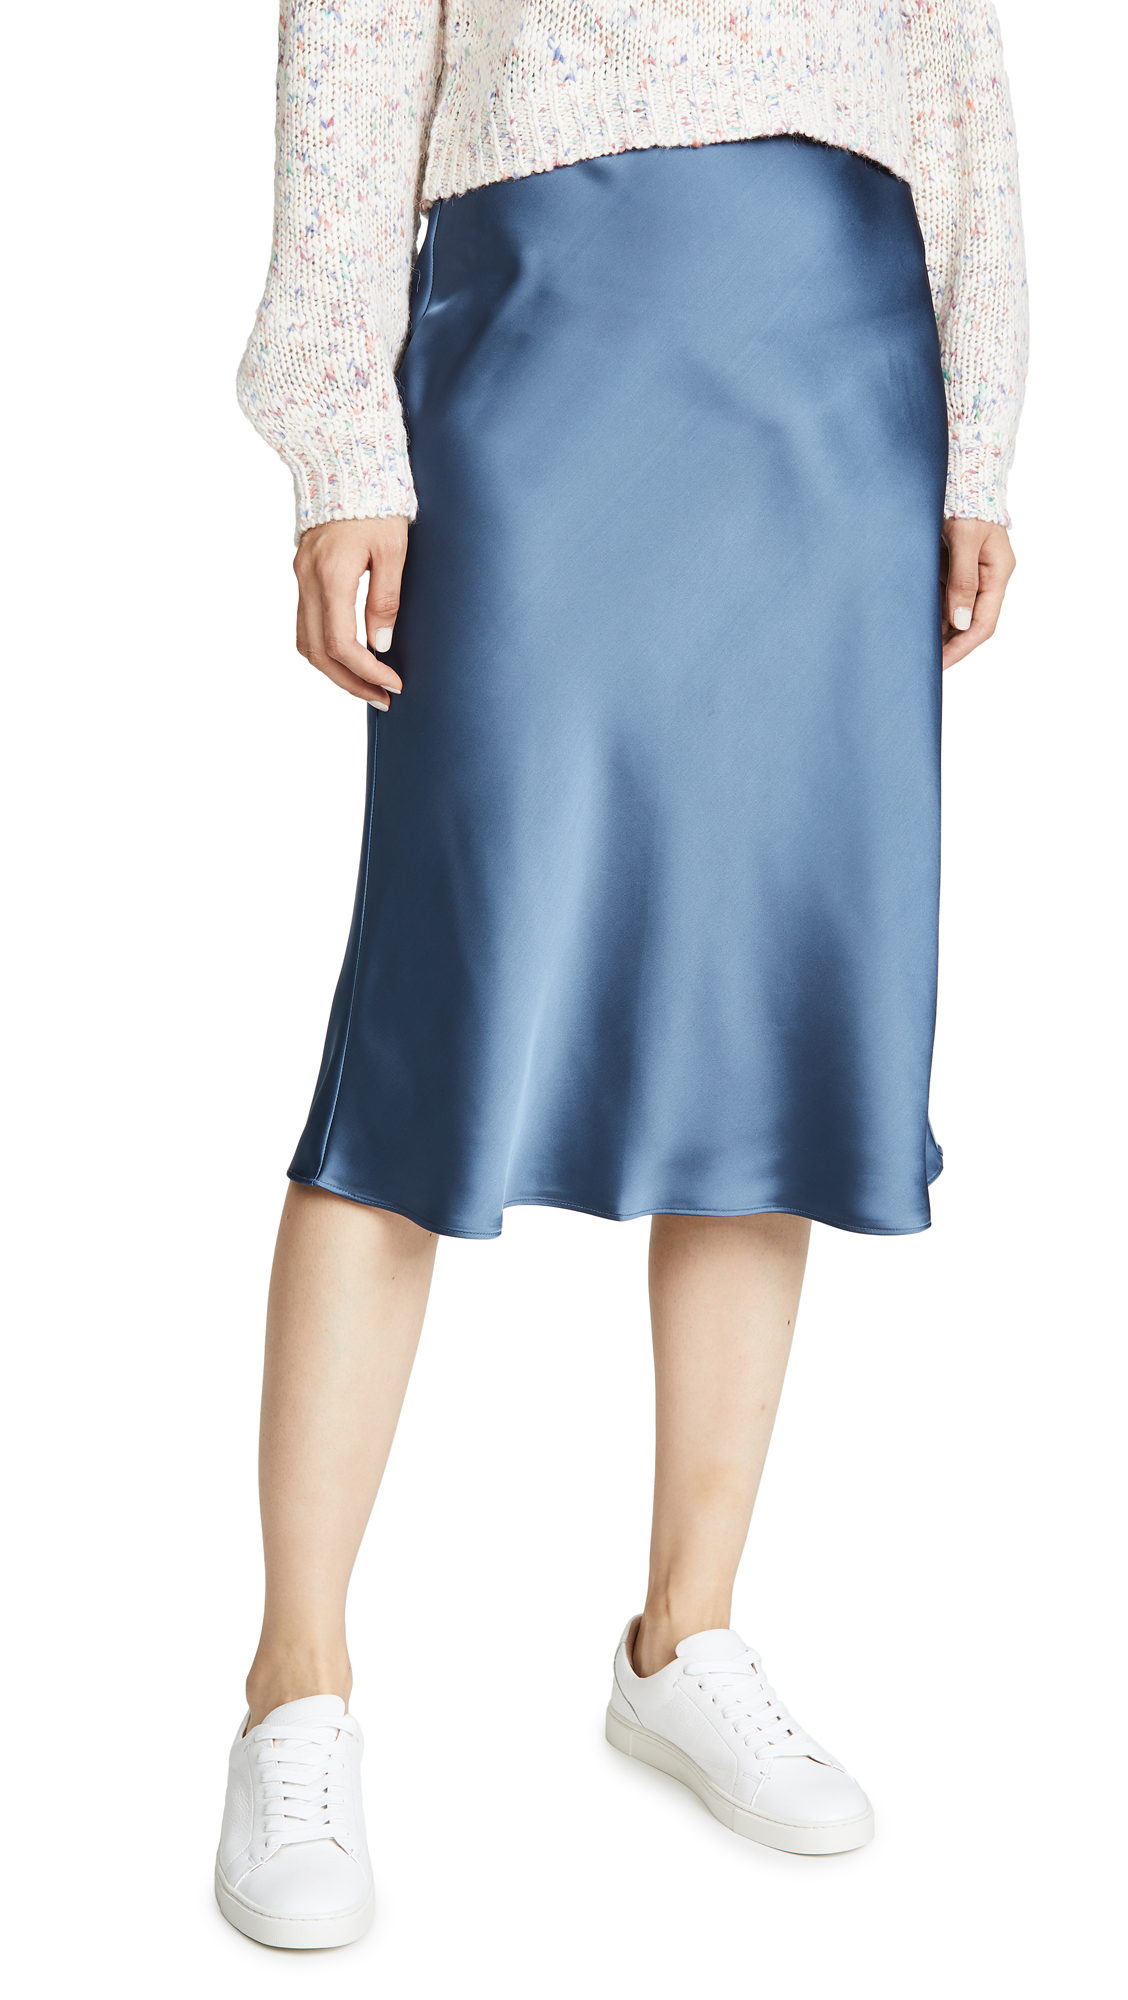 Club Monaco Trycia Skirt - Blue